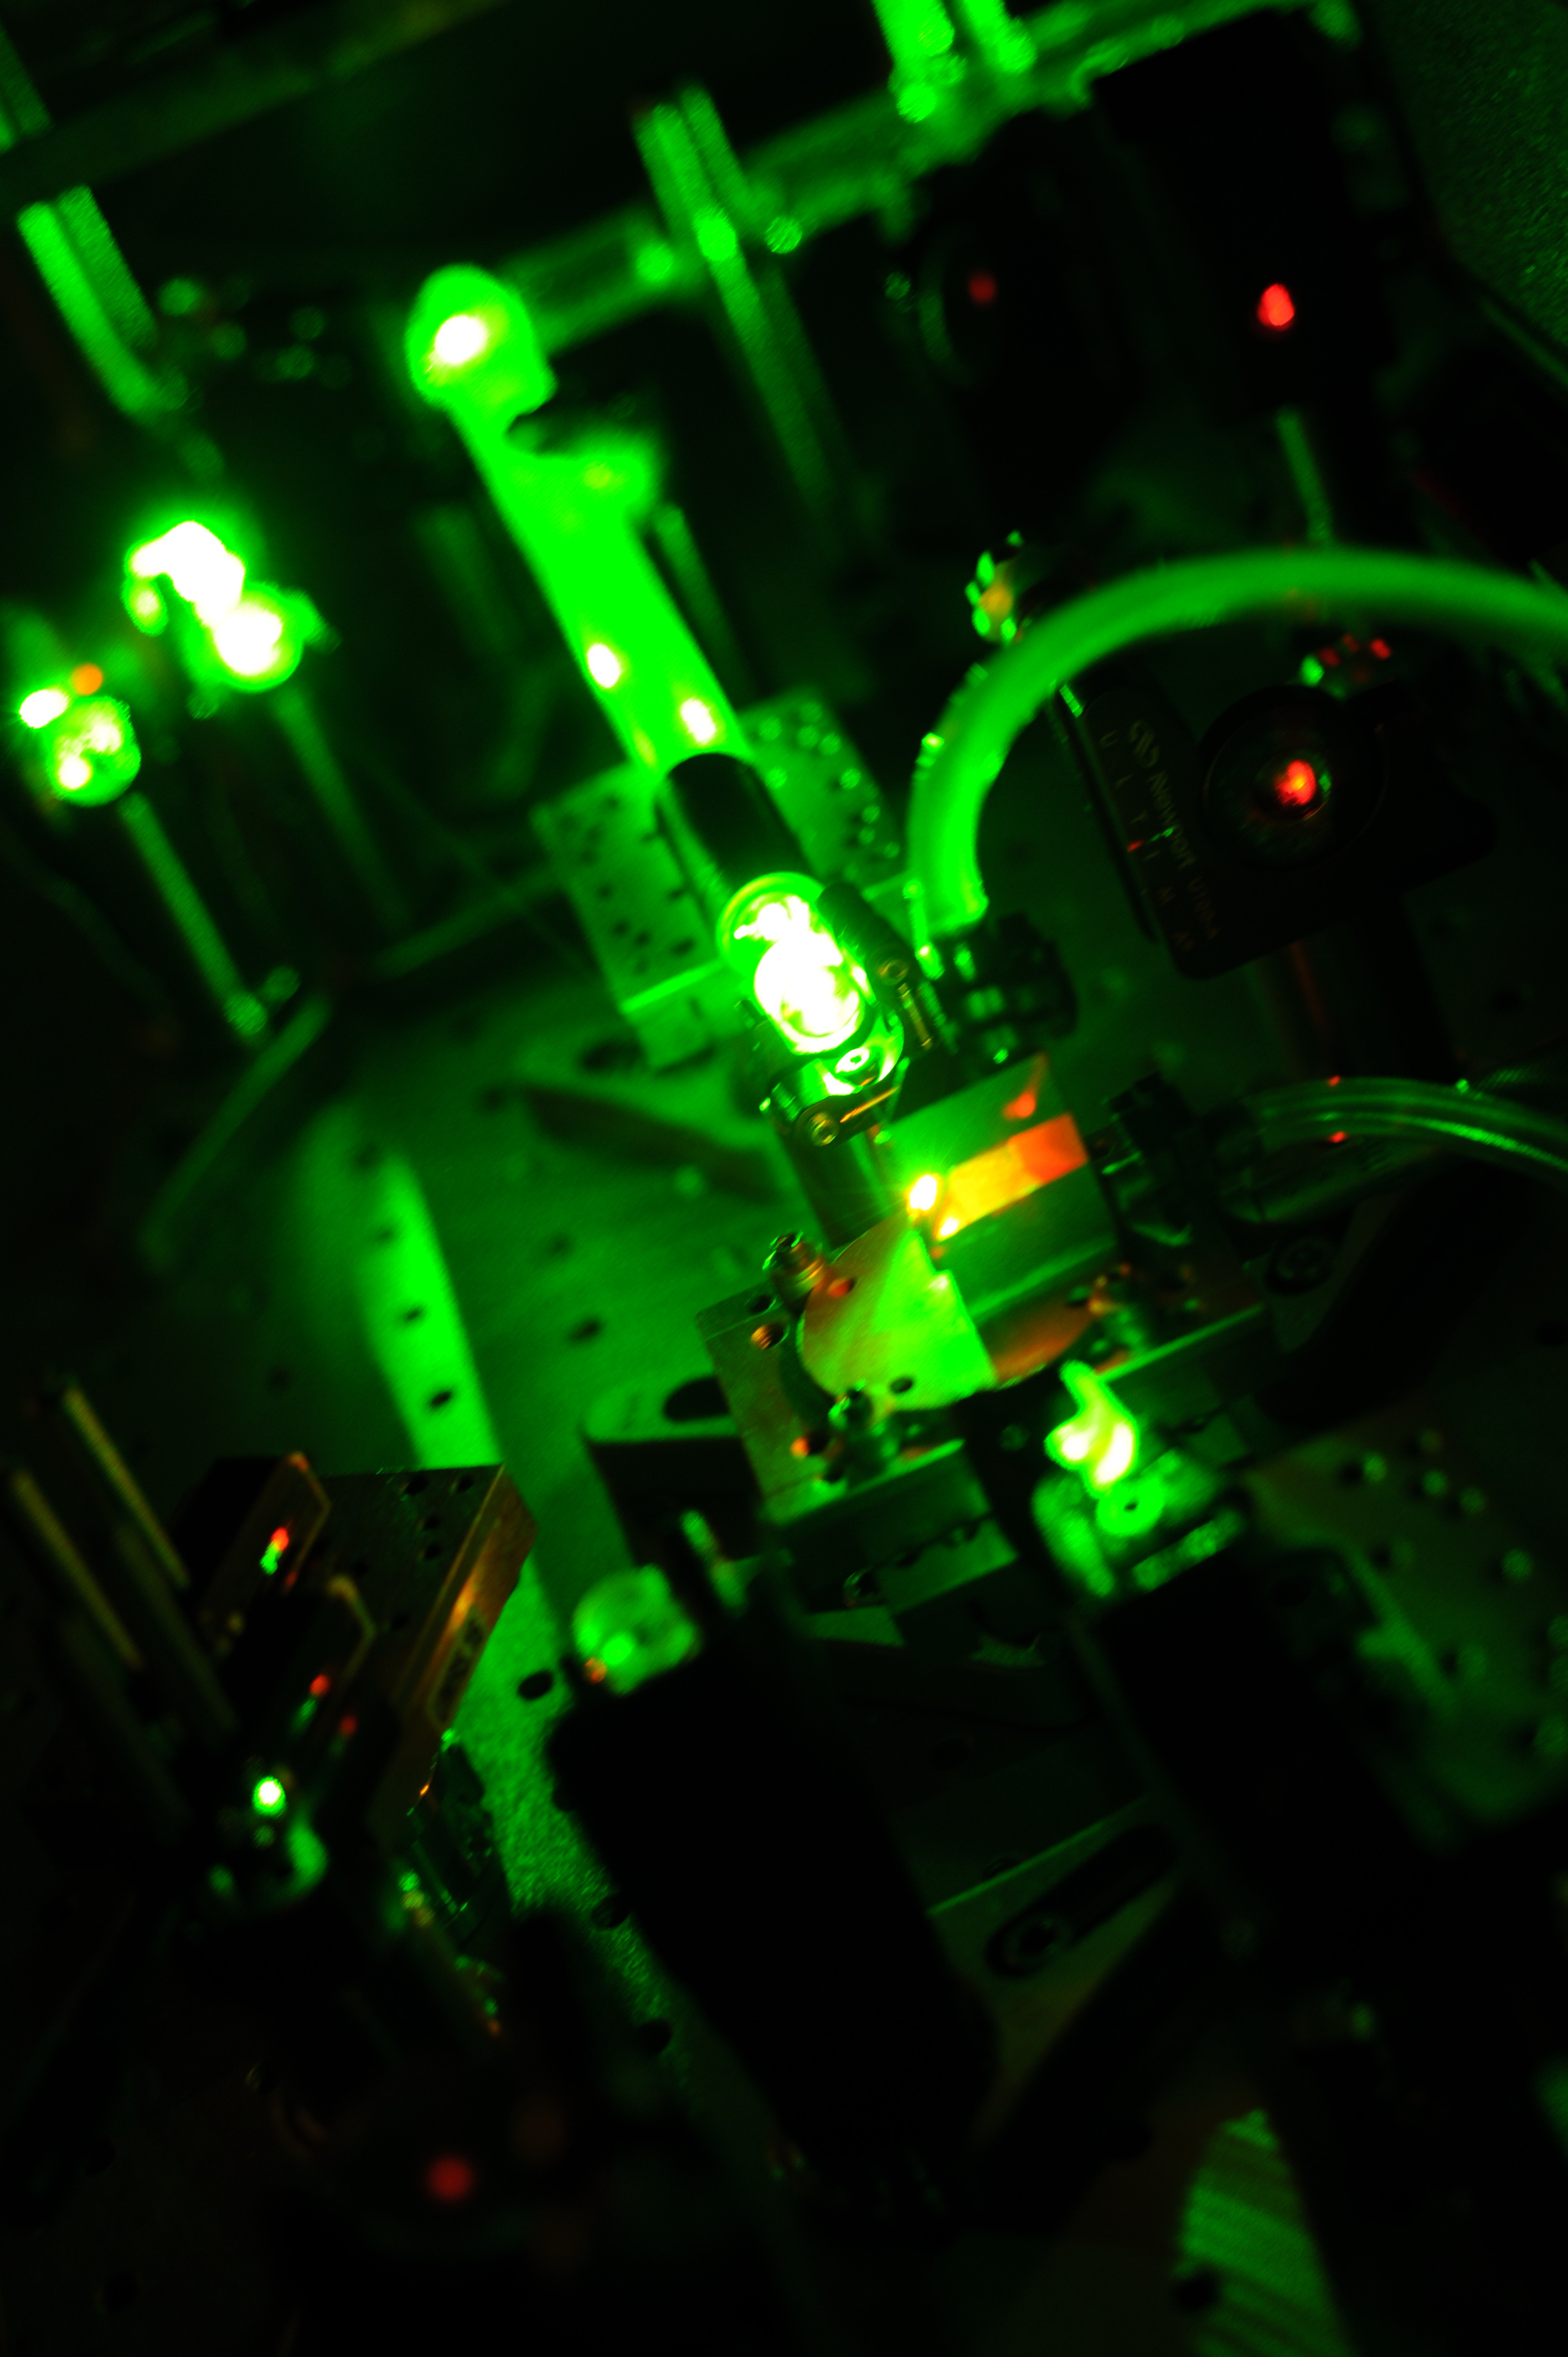 World's best metronome enables slow-motion pictures of atoms